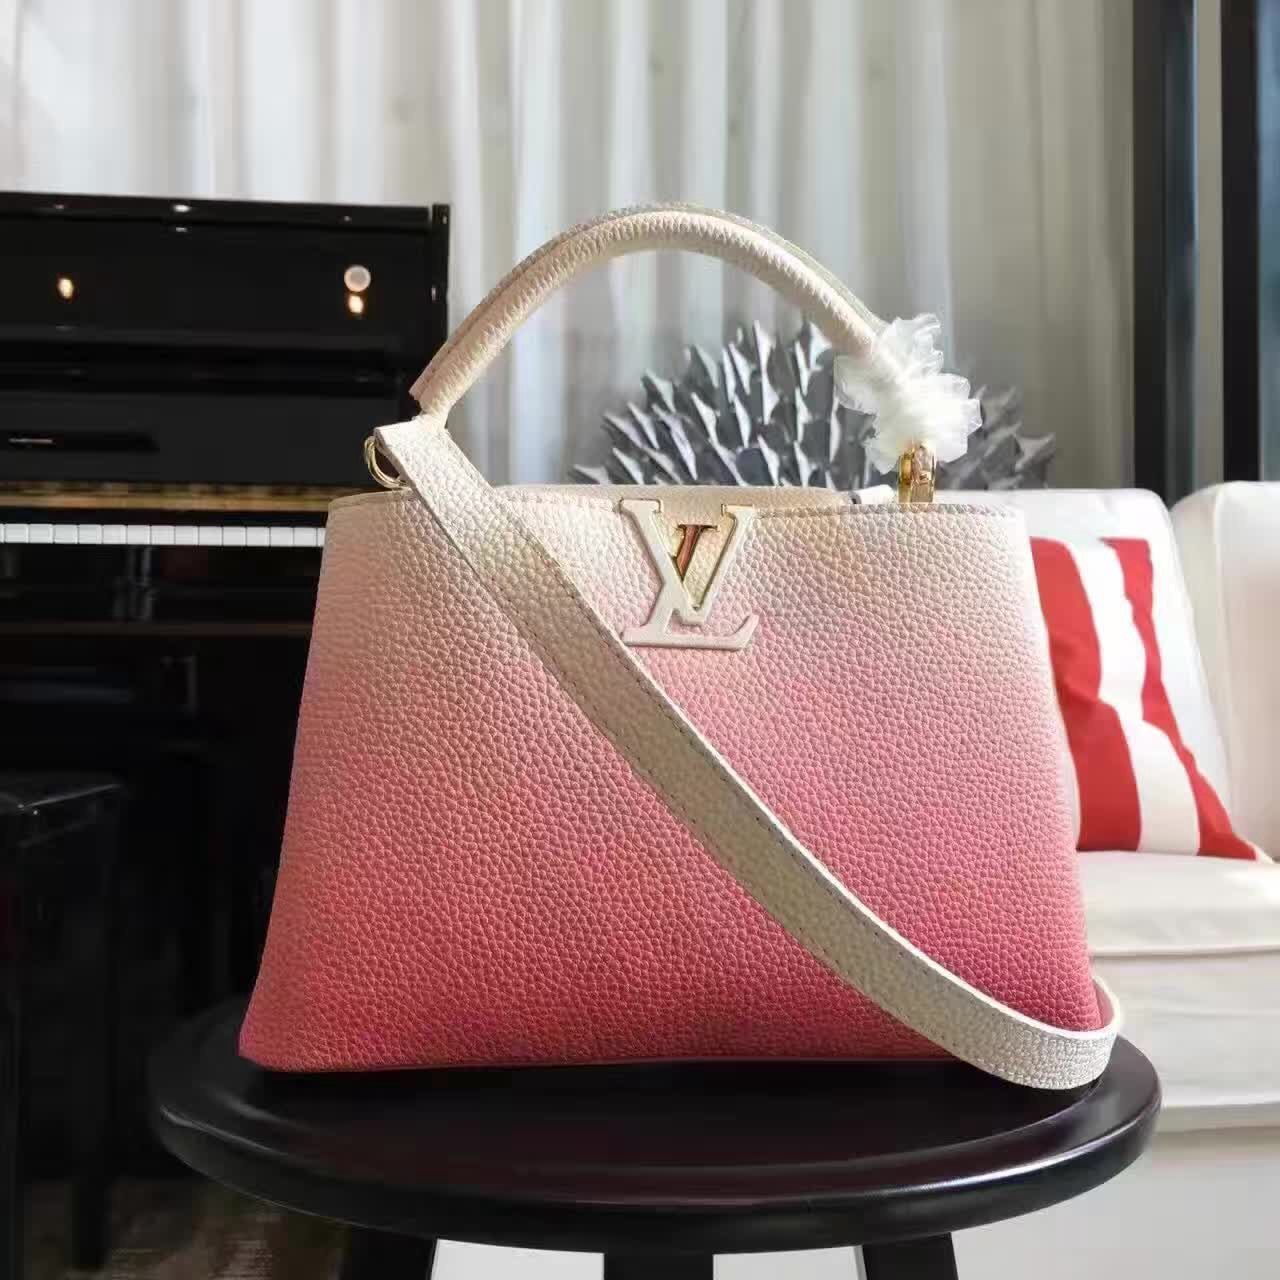 Louis Vuitton Grained Calfskin Capucines Bag In Gradient Color Pink BB F W  2016 d3fb307cfd